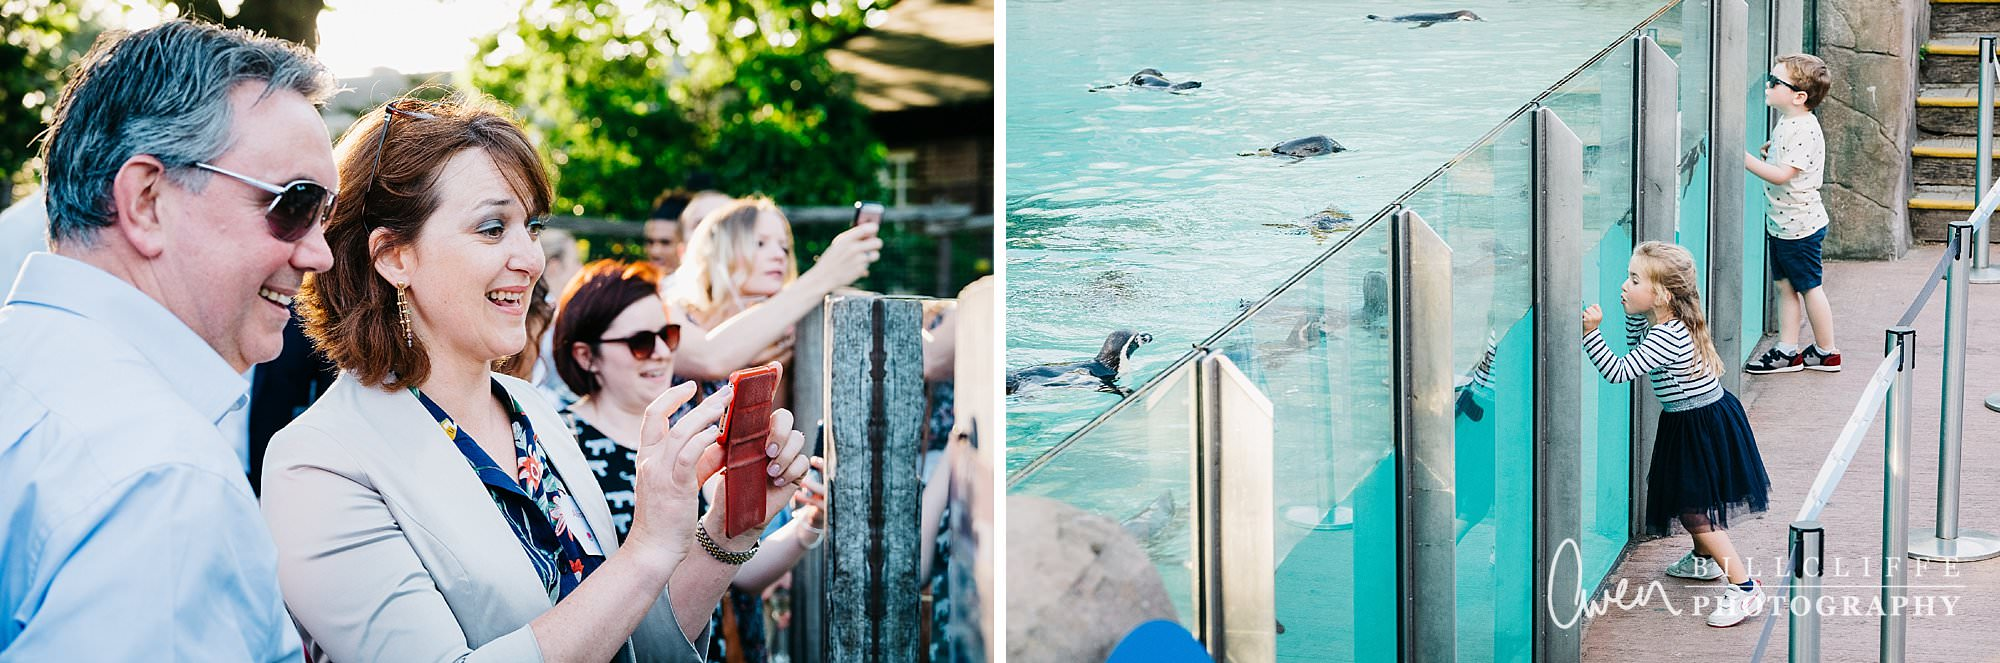 london event photographer zsl london zoo 1706 013 - A Party with the Penguins at London Zoo